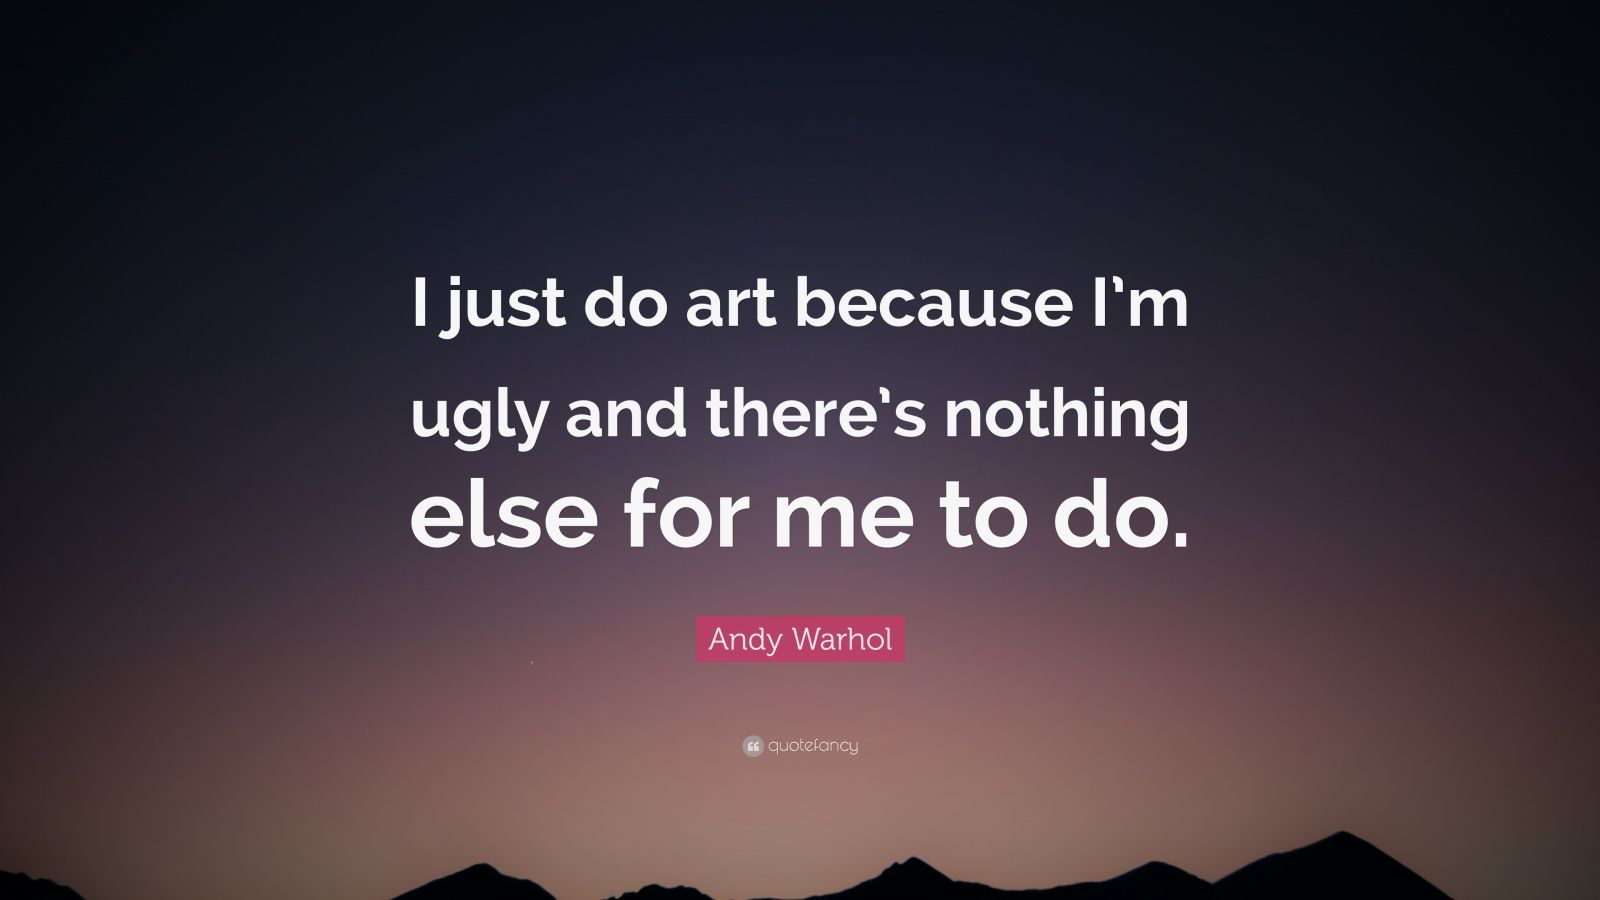 Andy Warhol Quotes Andy Warhol Quotes 100 Wallpapers  Quotefancy